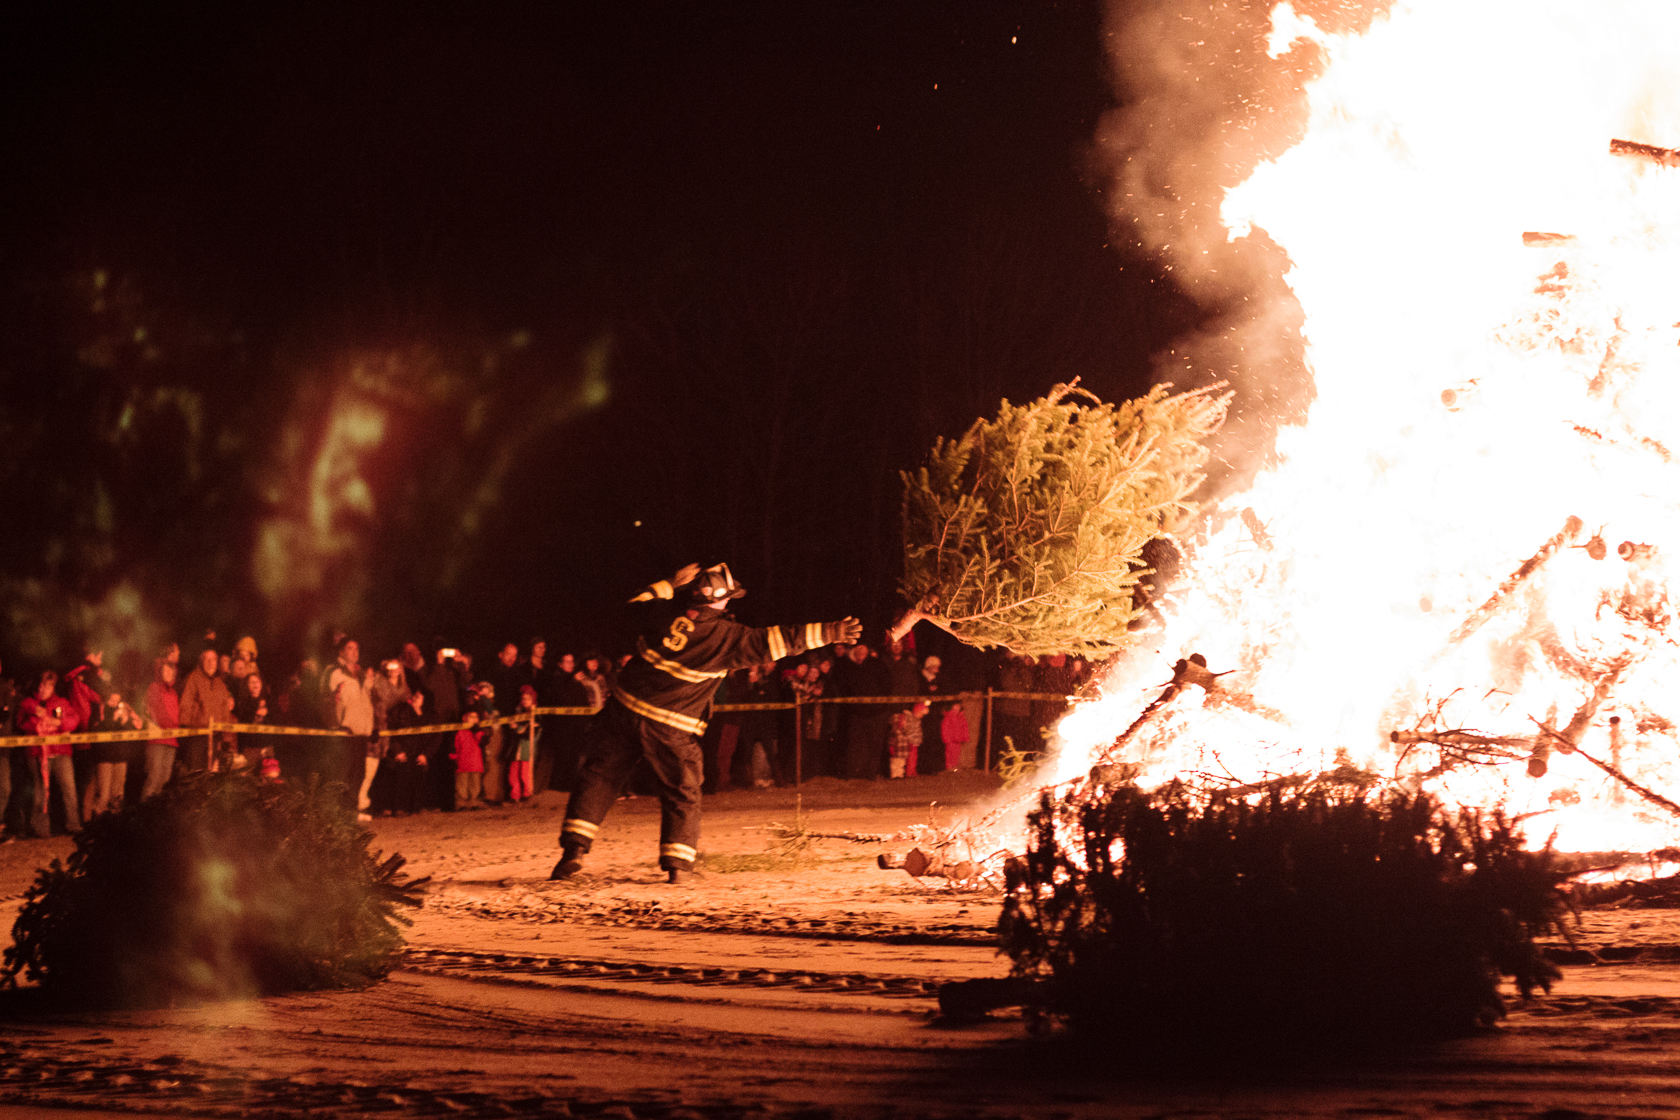 Salem Christmas Tree Bonfire Christina Minniti Photography